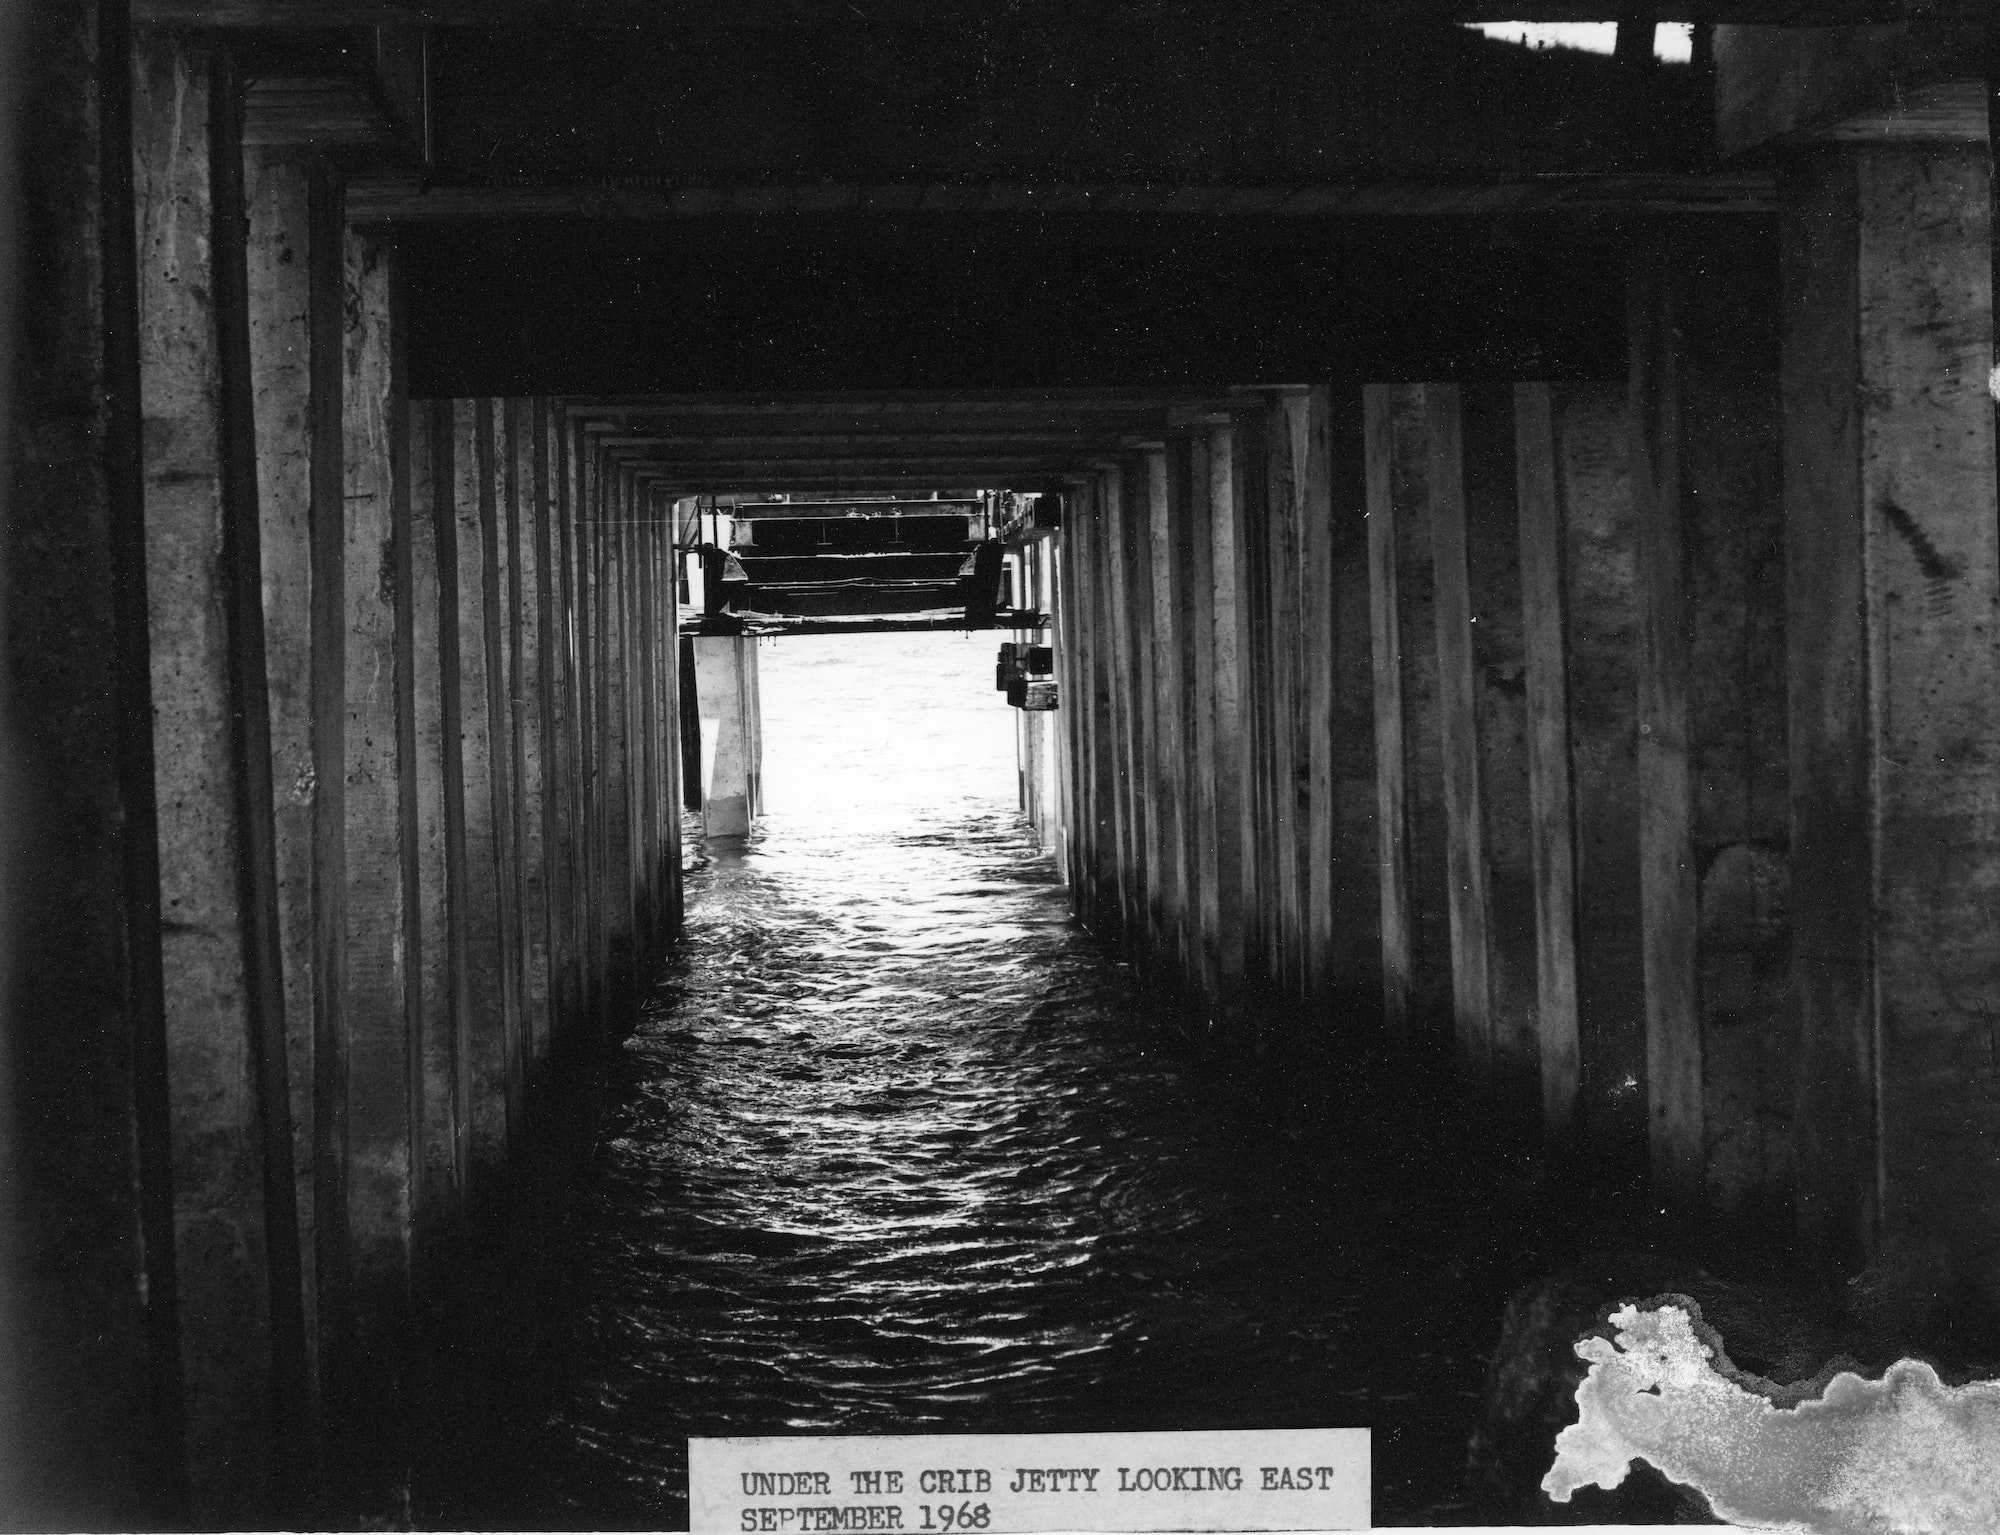 underneath the north jetty crib structure in September 1968